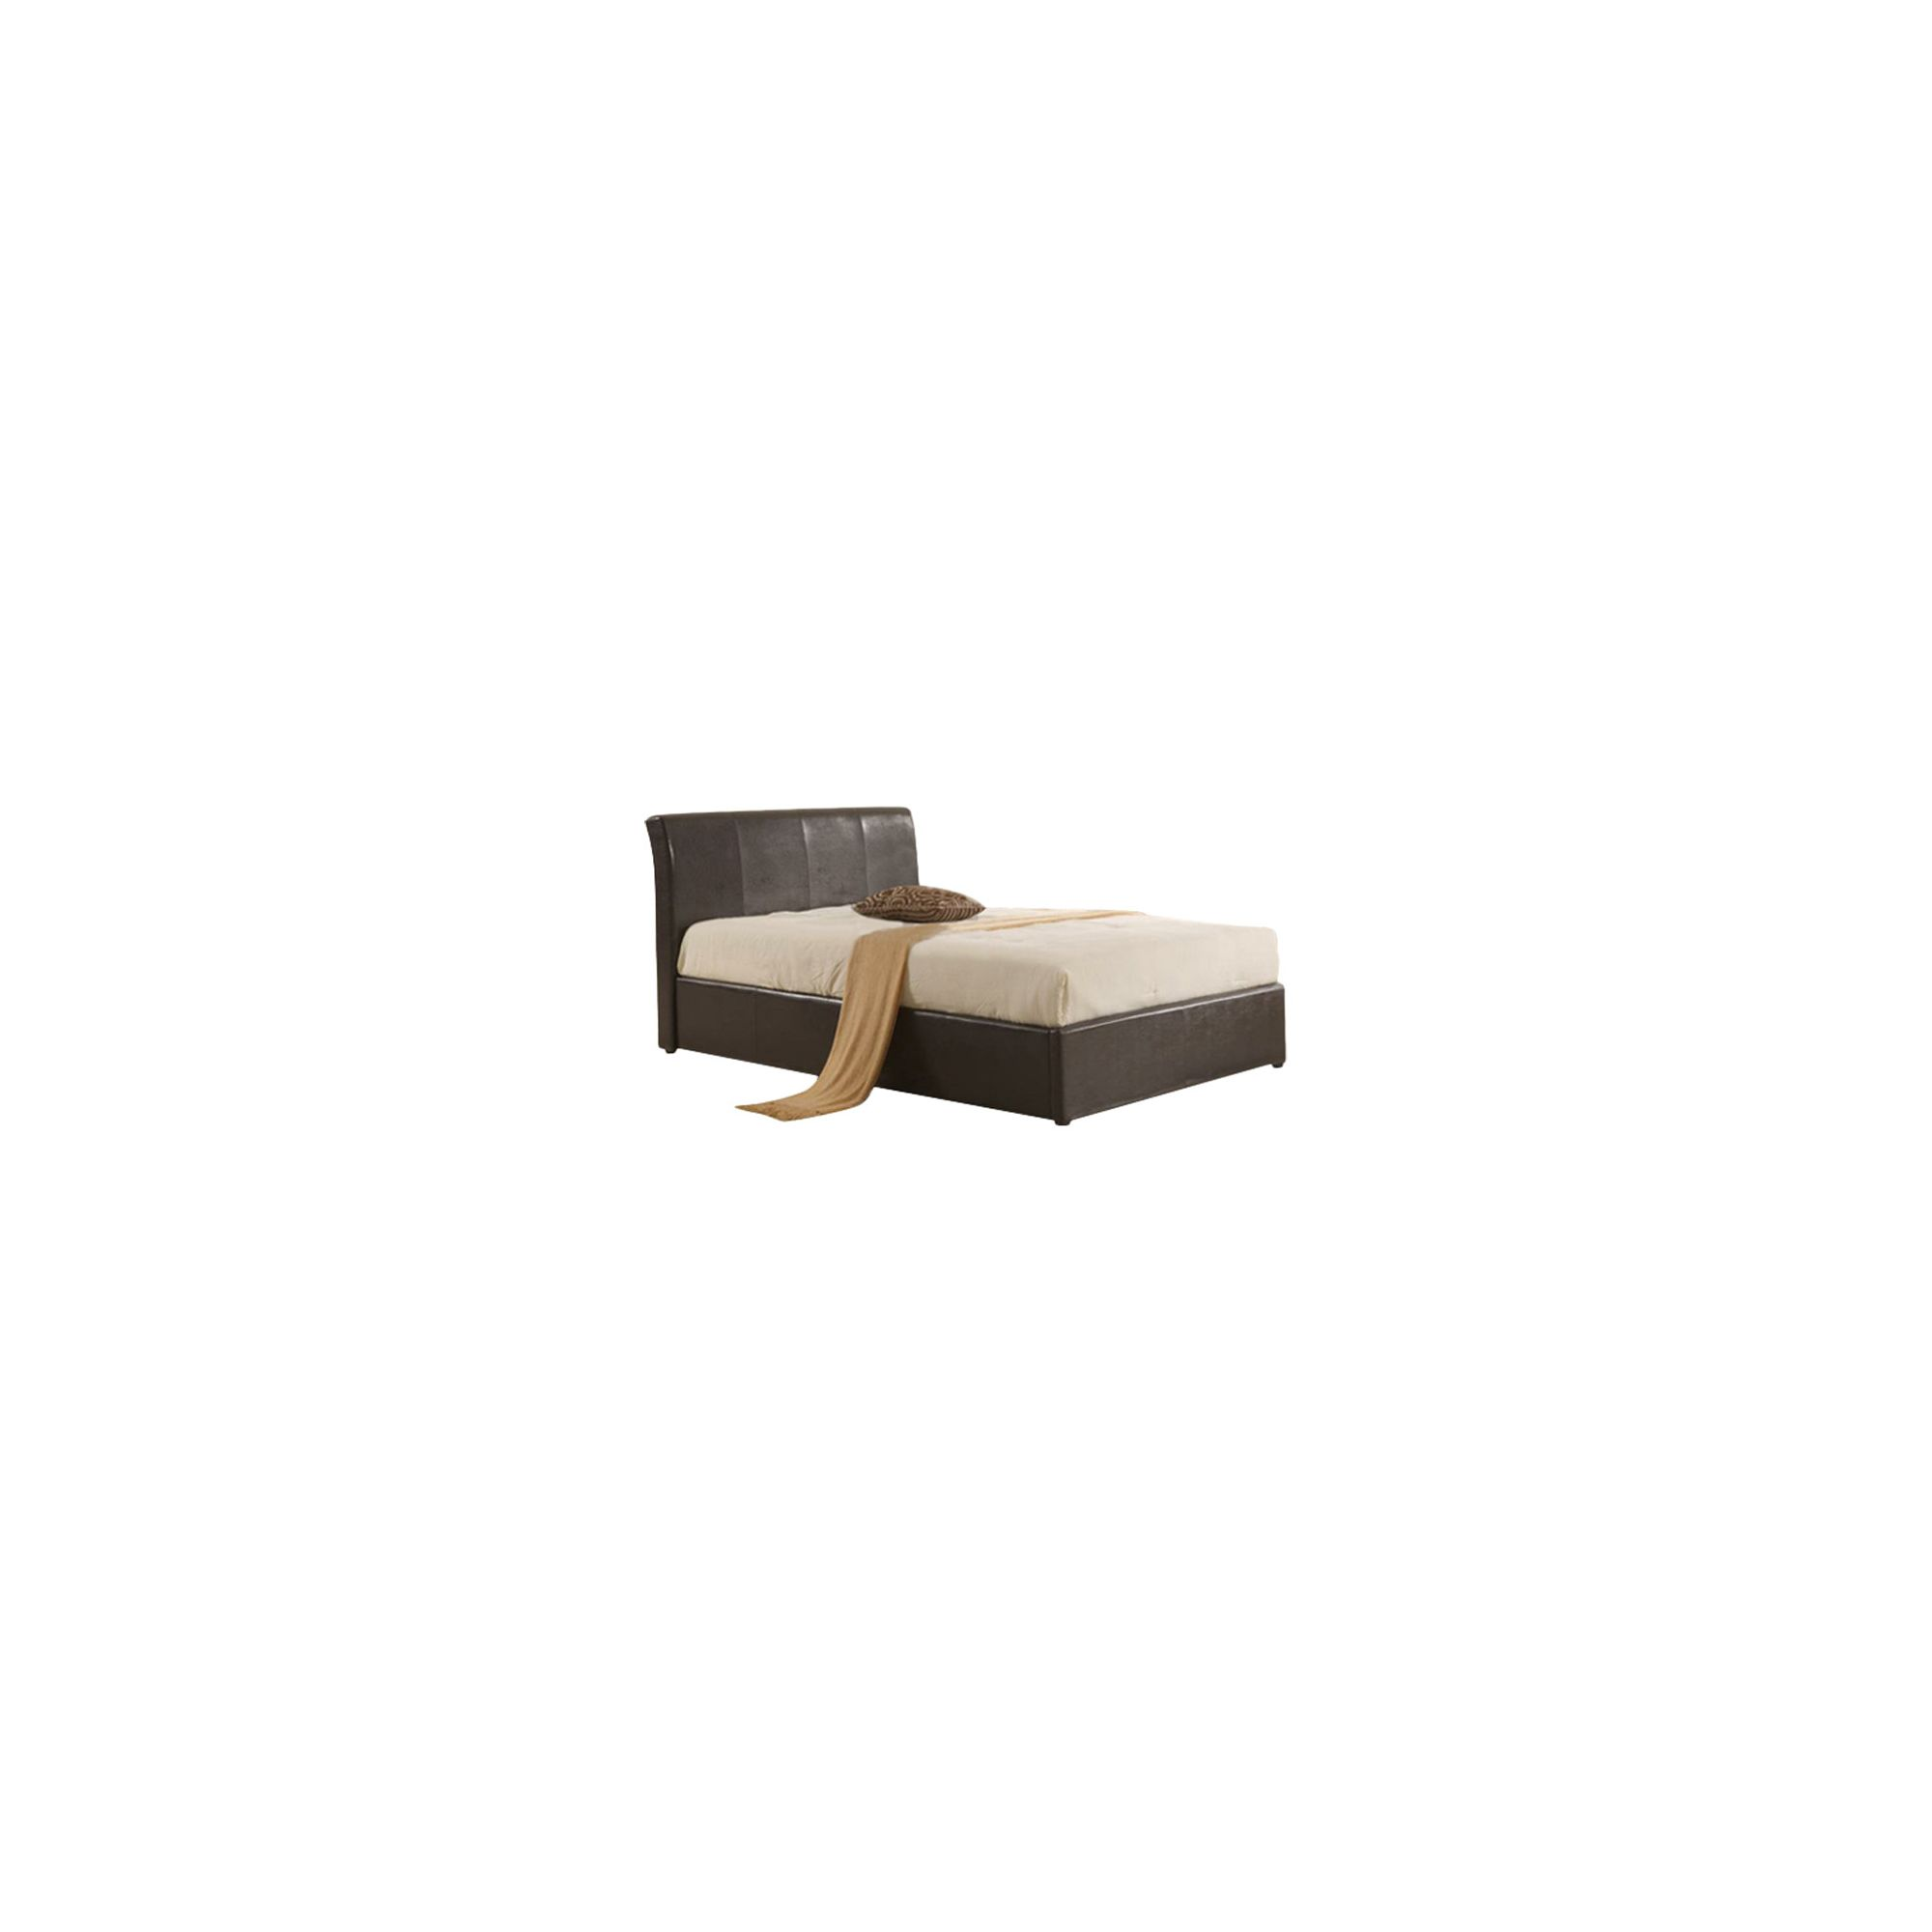 MetalBedsLtd Texas New Ottoman Bed - Brown - Small Double at Tesco Direct